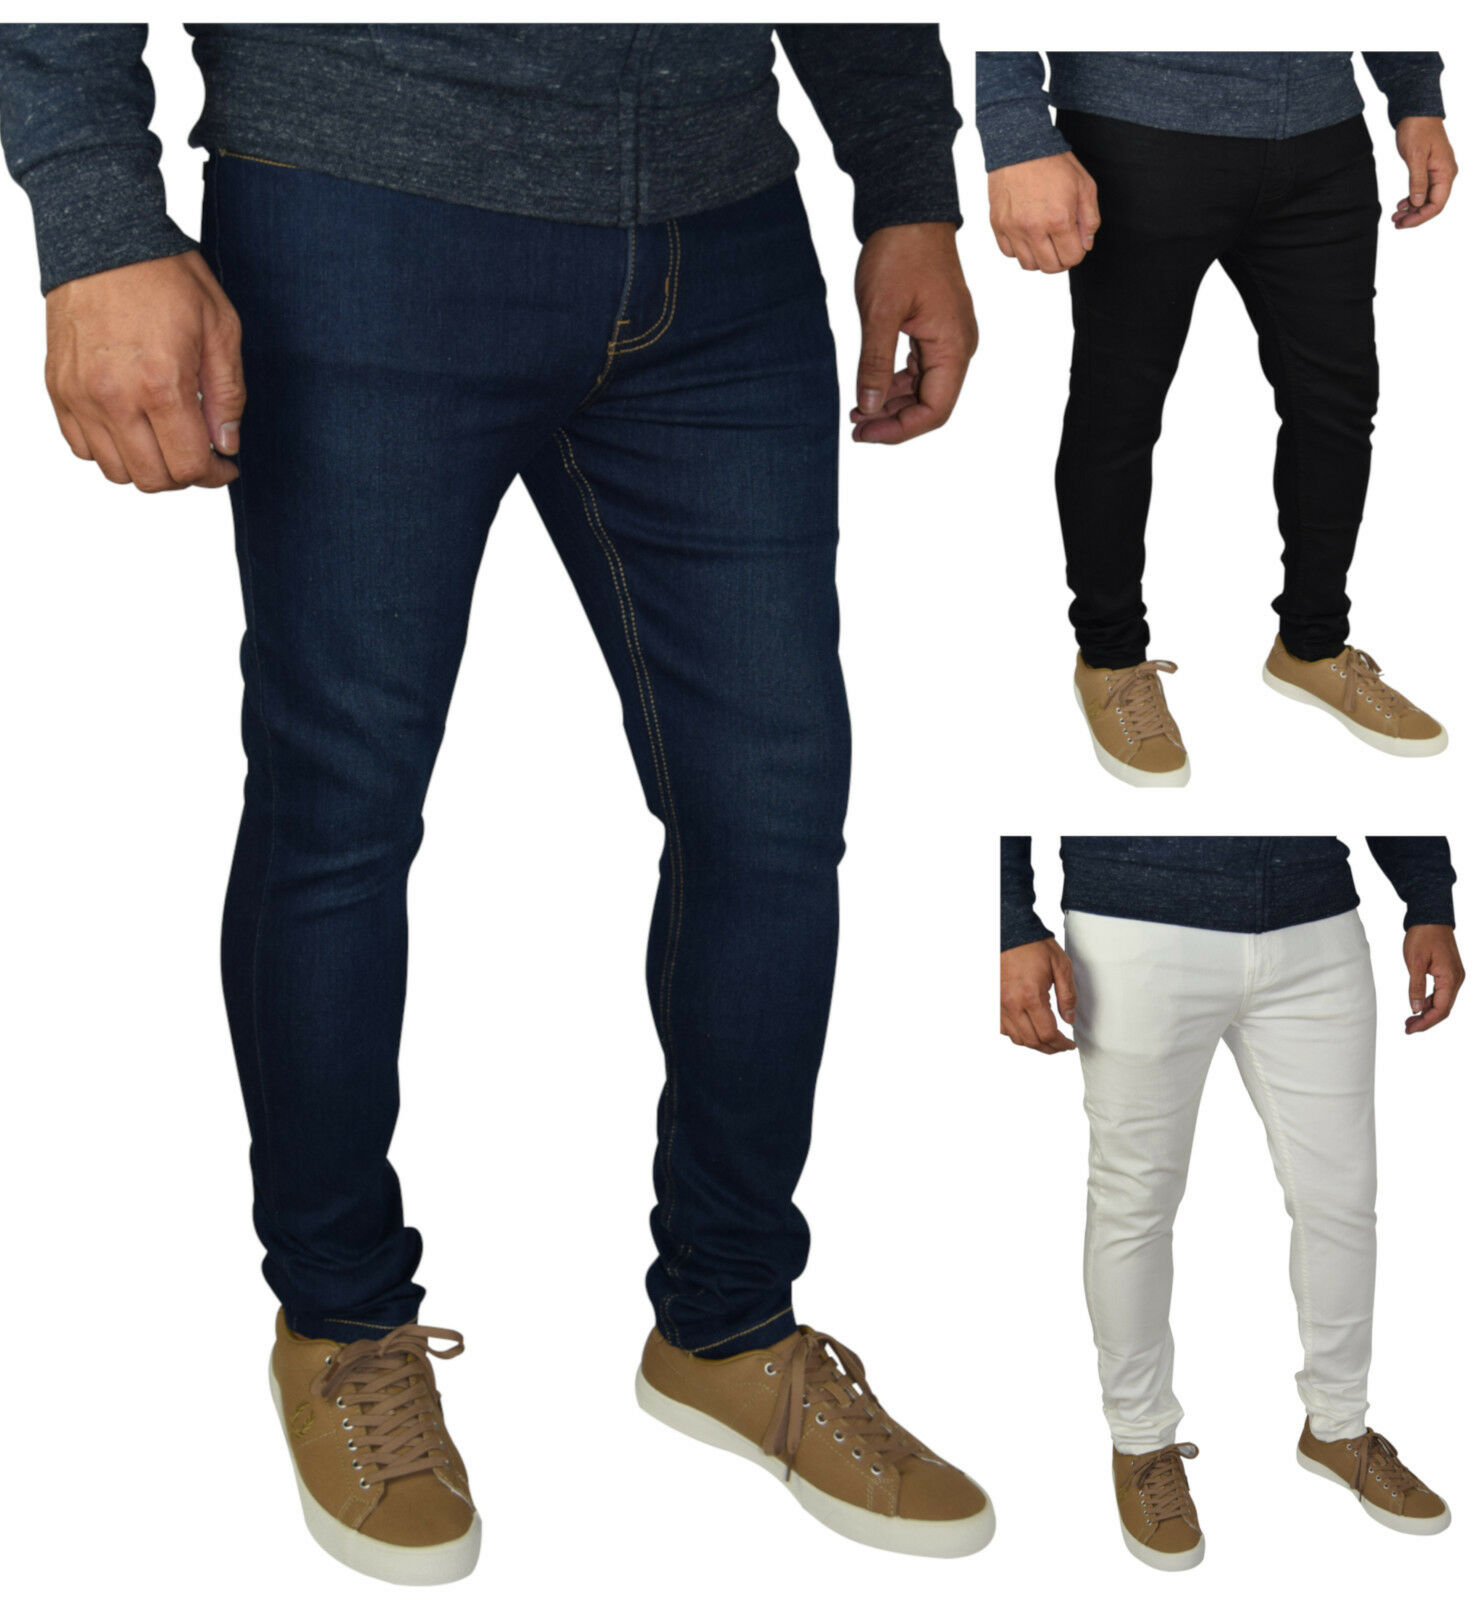 Mens Skinny Fit Super Stretch Jeans Clothing, Shoes & Accessories